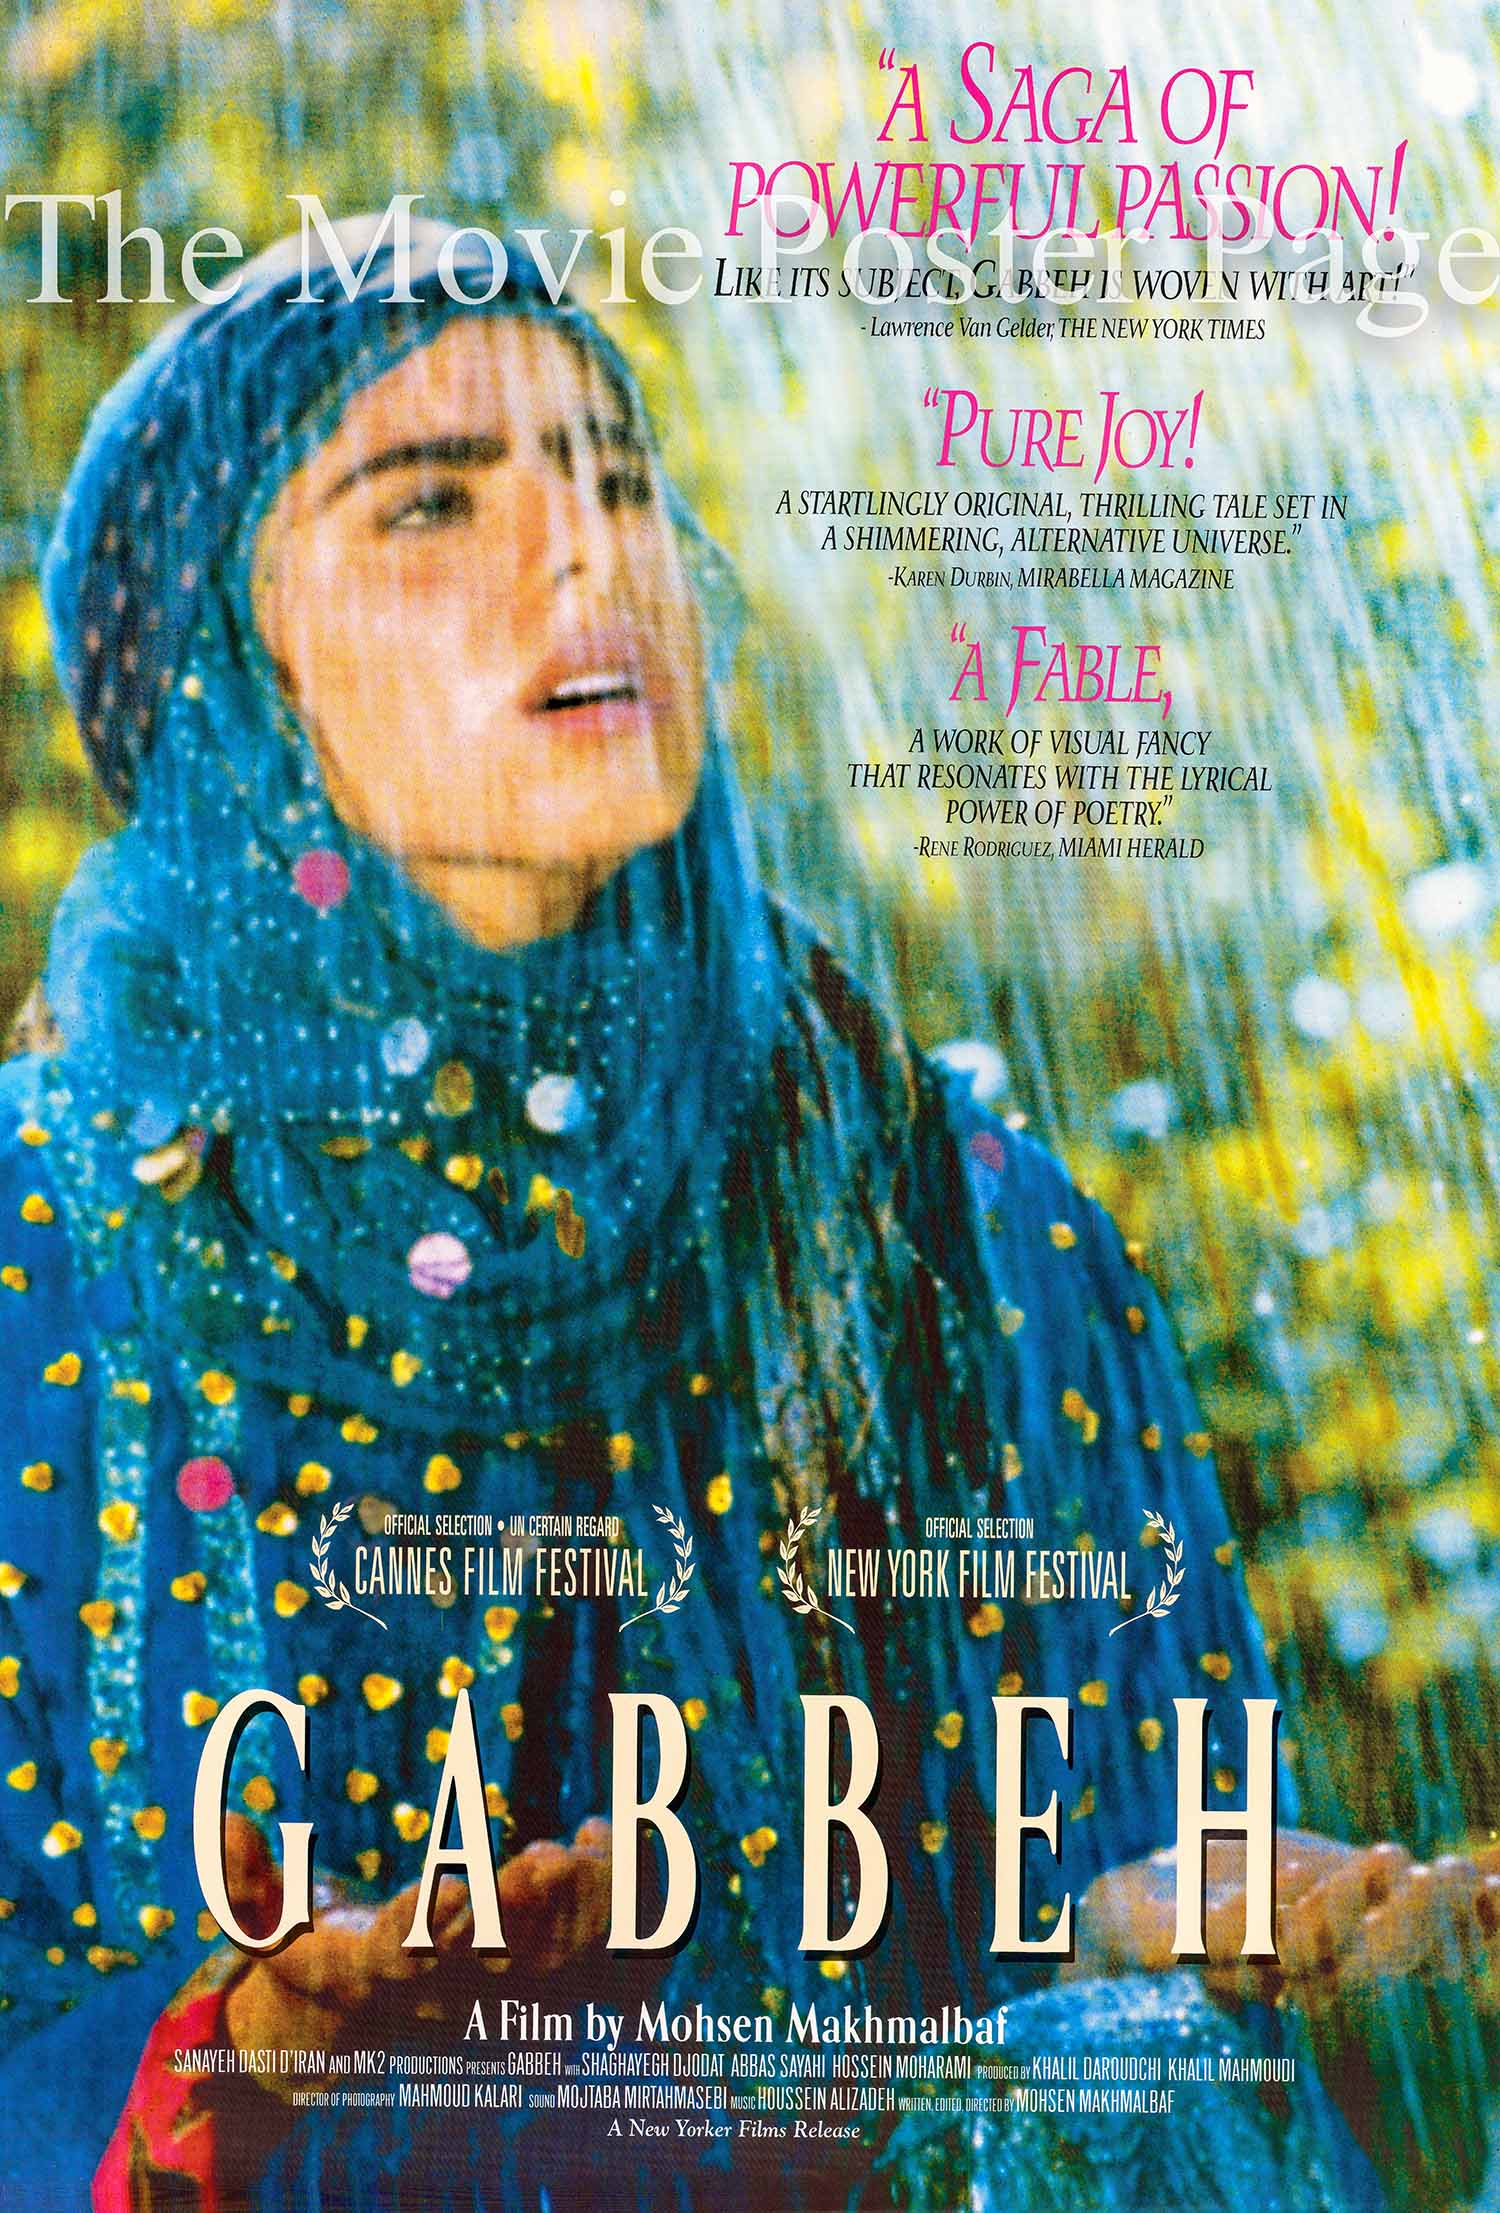 Pictured is a US reviews poster made to promote the 1996 Mohsen Makhmalbaf film Gabbeh starring Shaghayeh Djodat as Gabbeh.